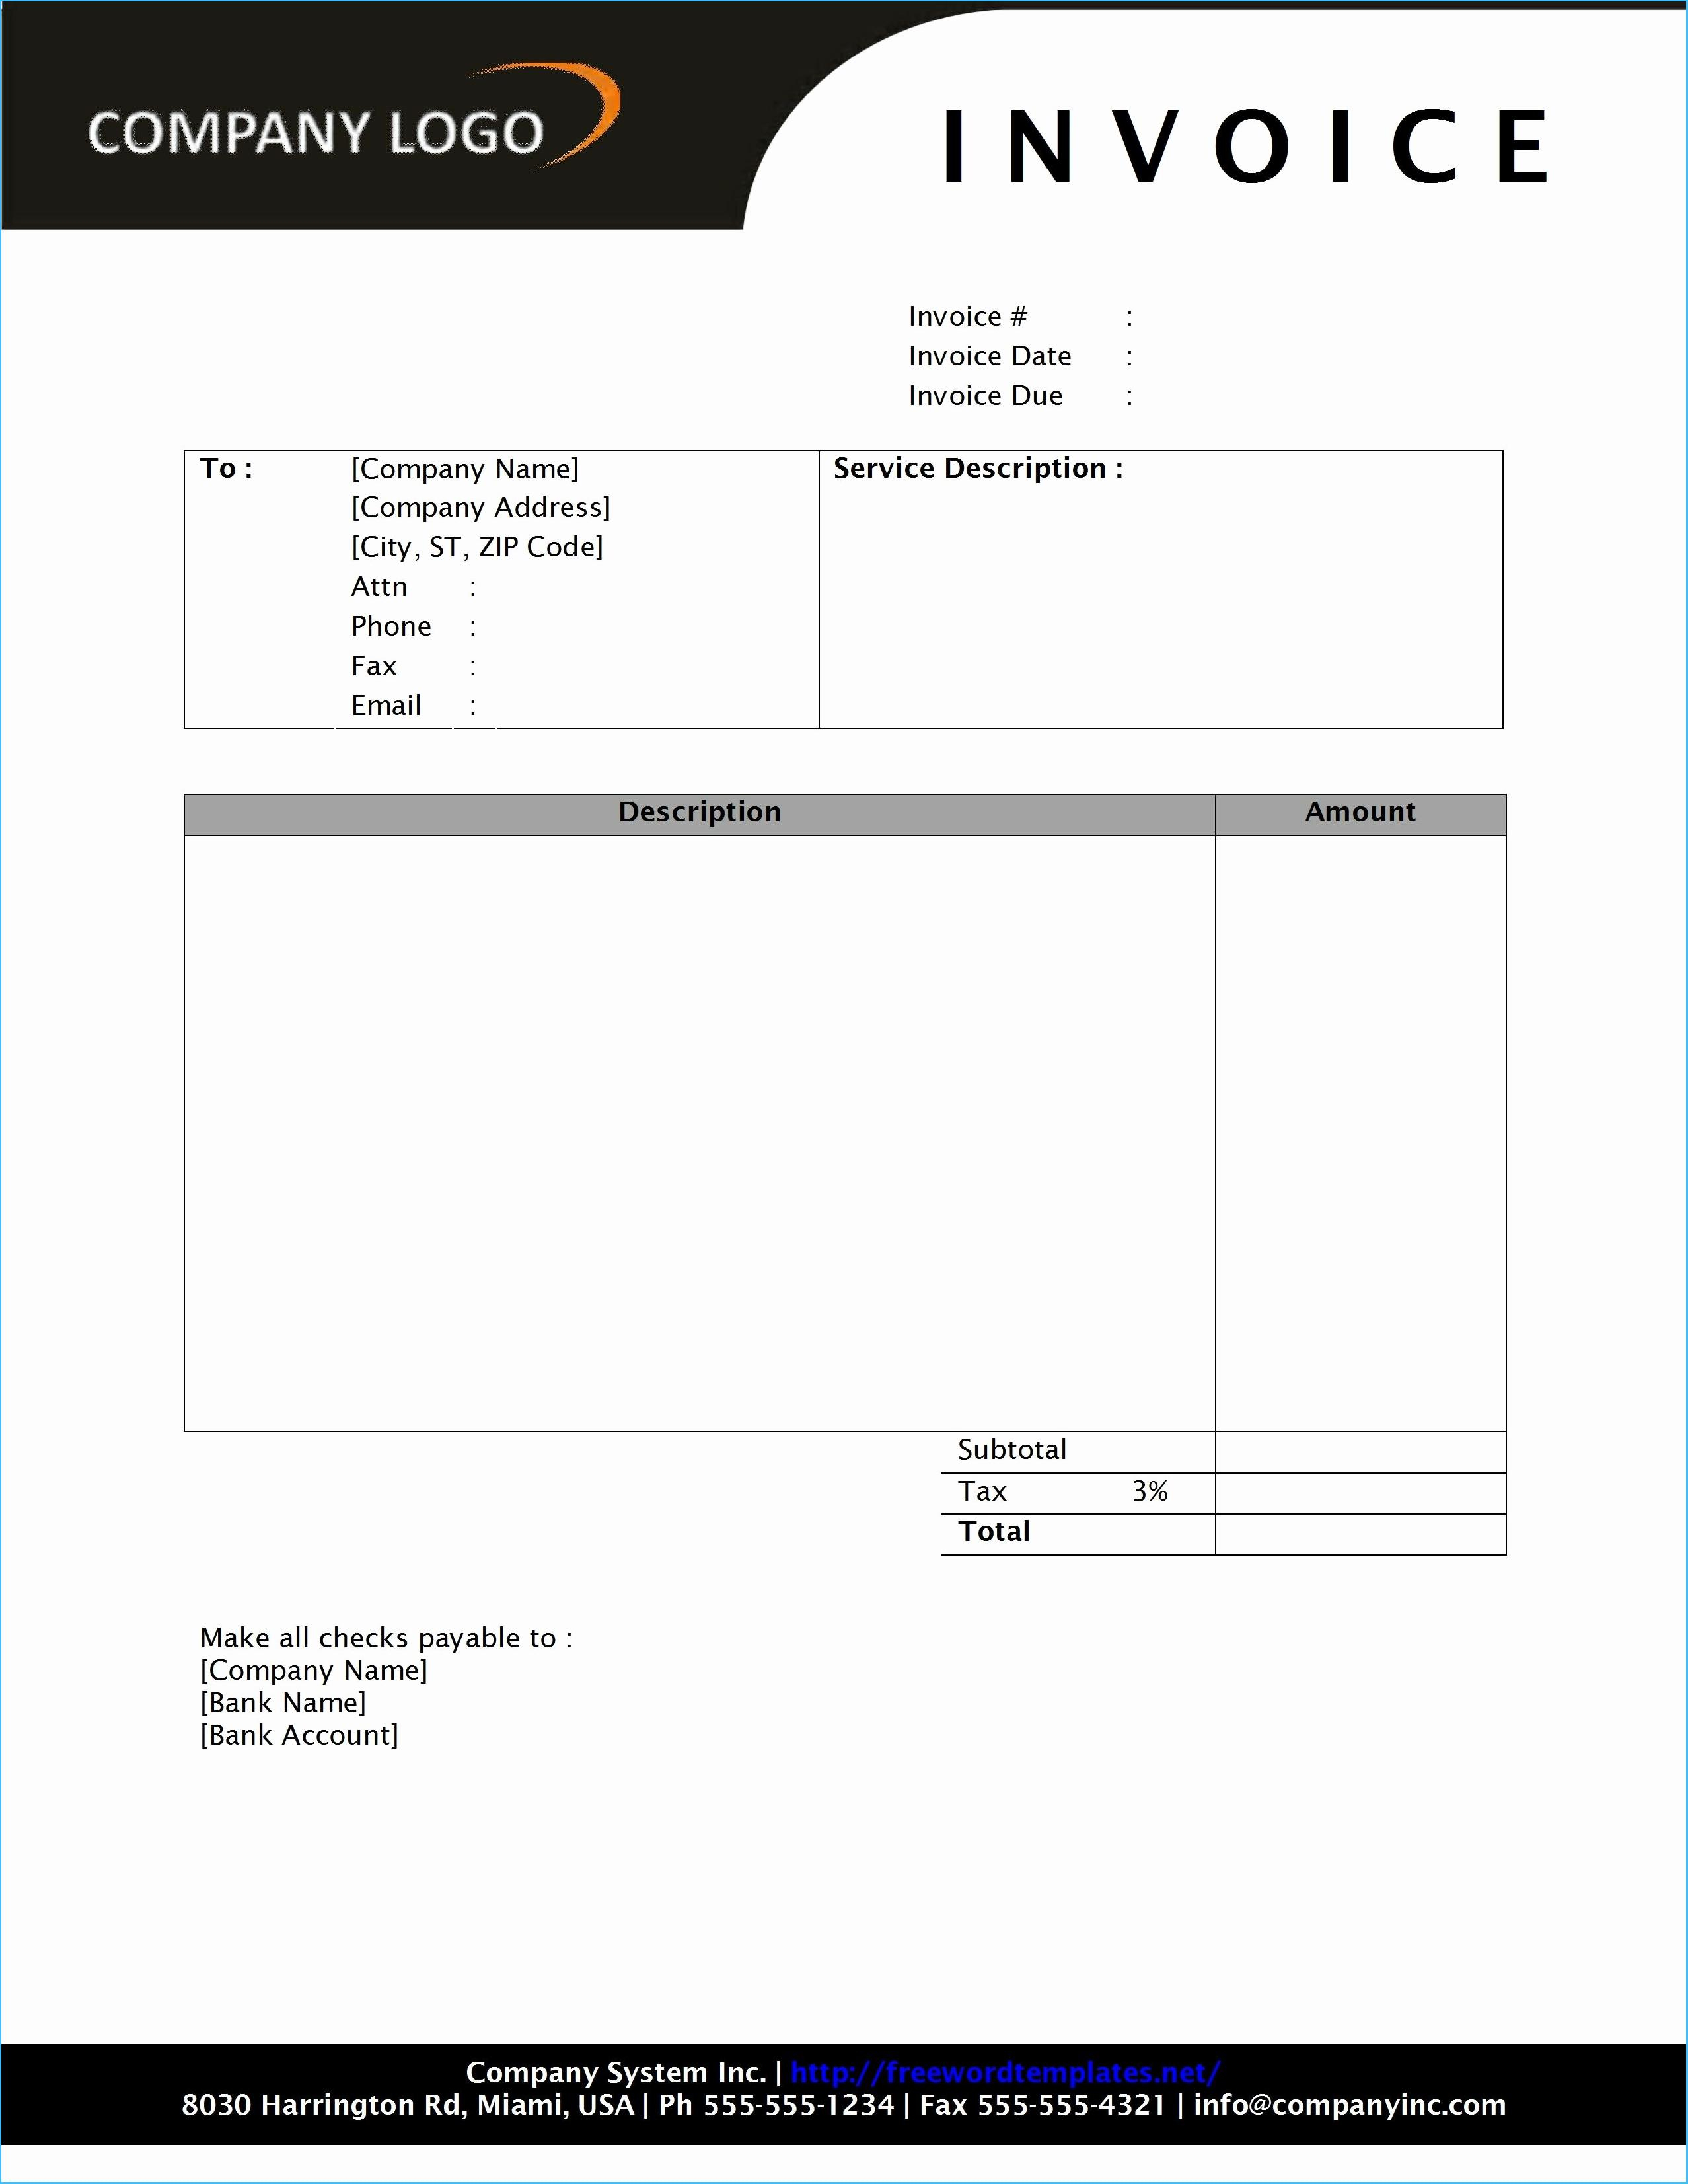 Latest Invoice Template Word 2010 Which You Need To Make Inside Invoice Template Word 2010